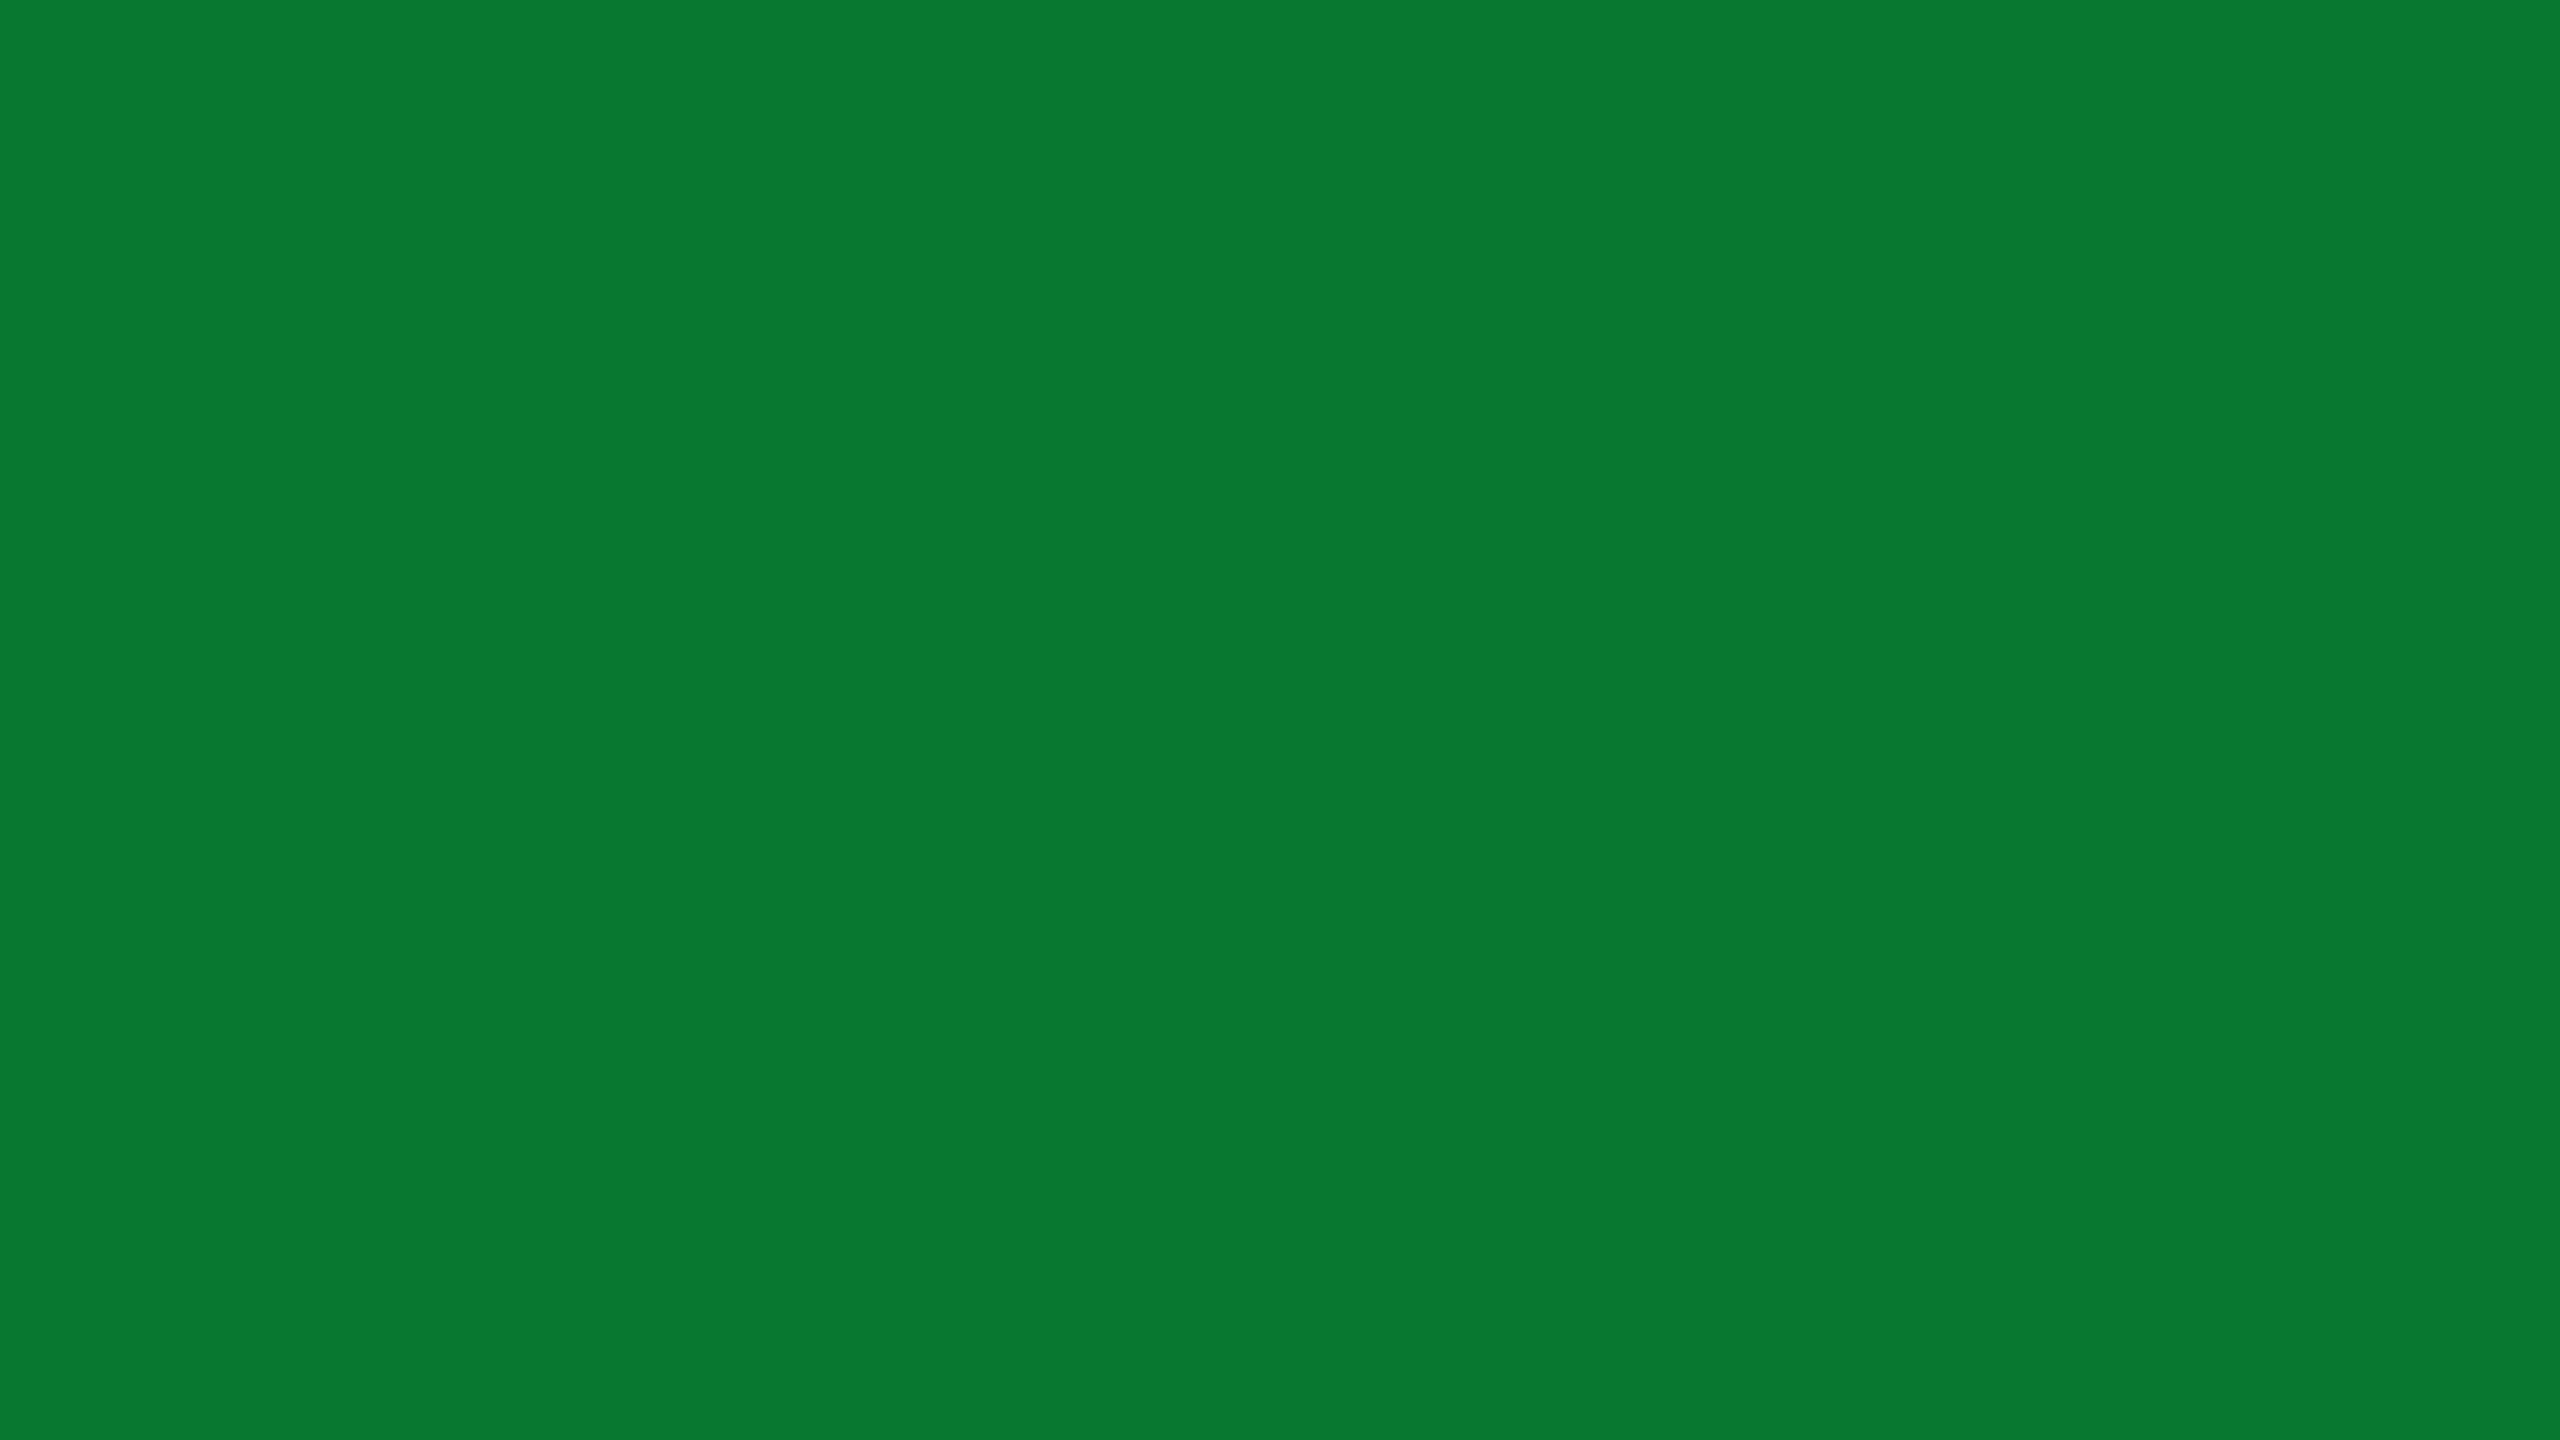 2560x1440 La Salle Green Solid Color Background